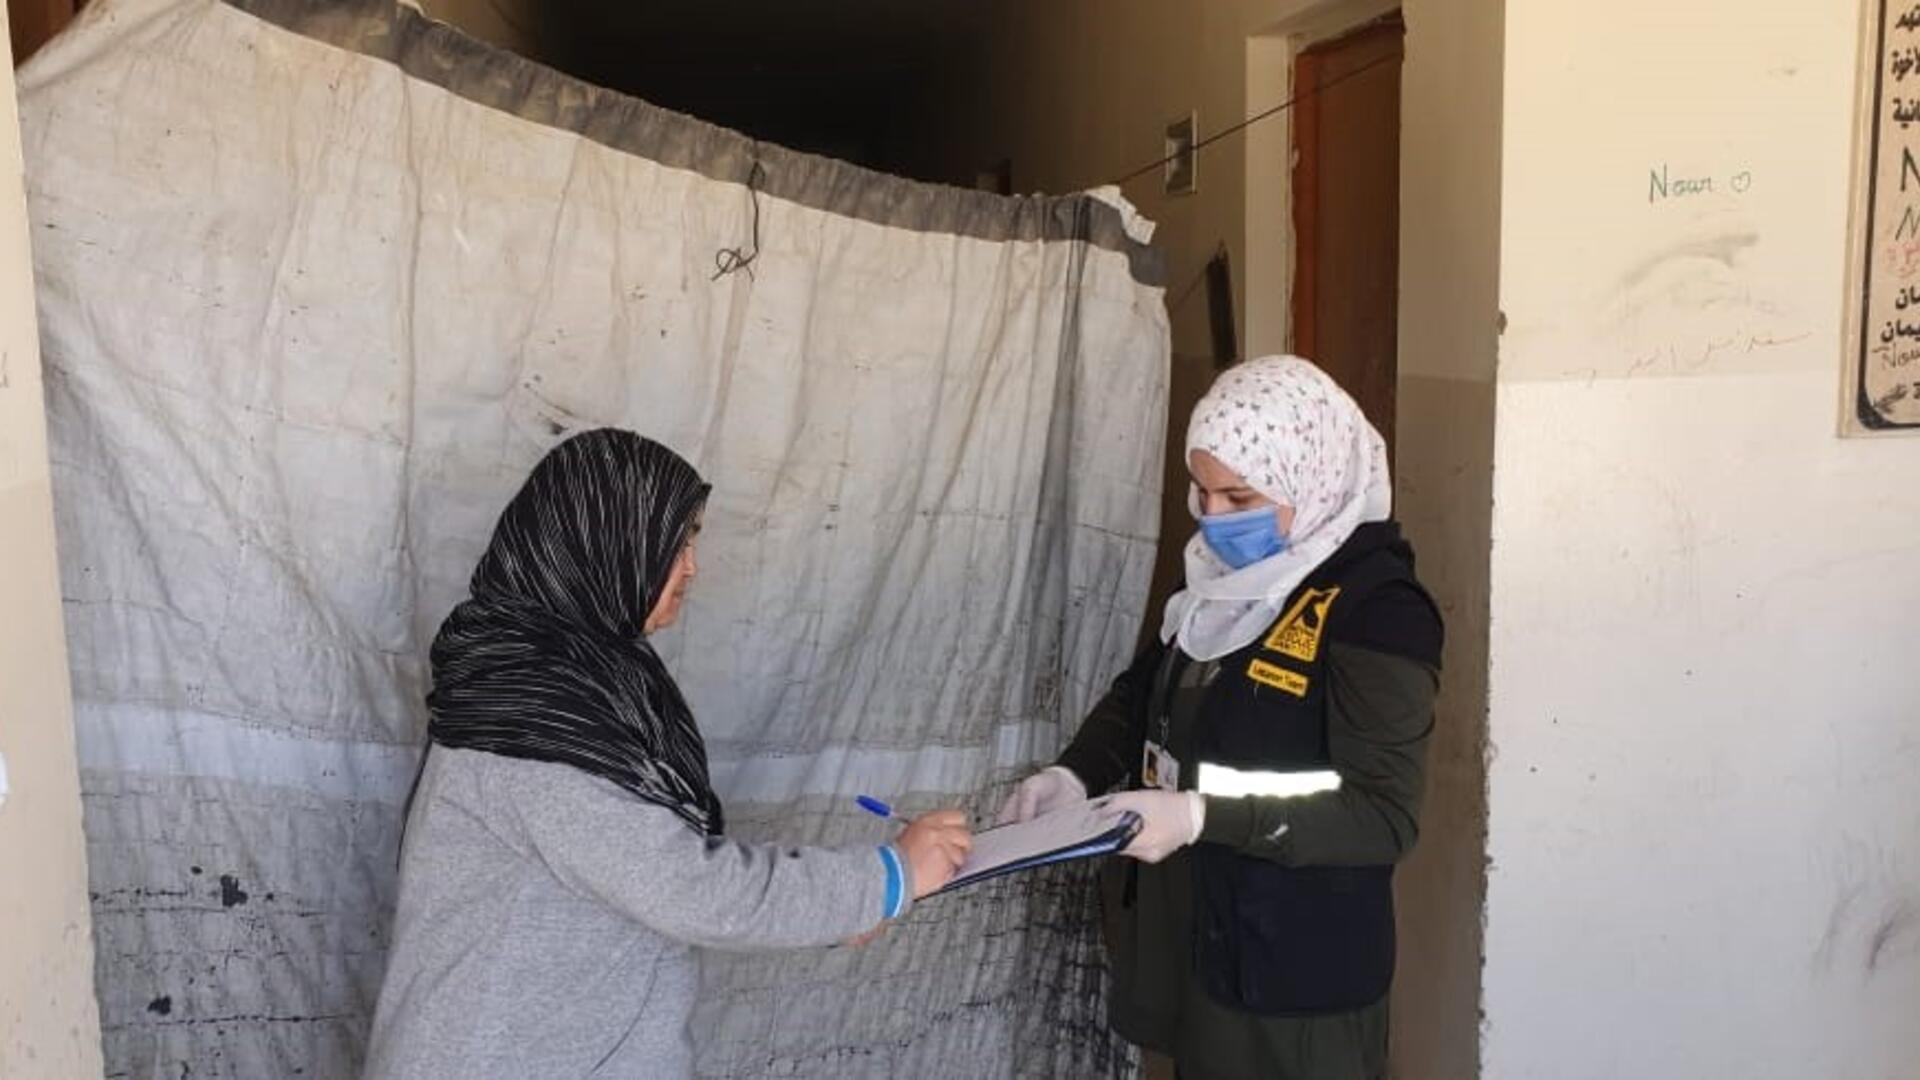 A woman signs a form offered by a female IRC aid worker wearing a mask as a COVID-19 precaution while distributing emergency cash assistance.